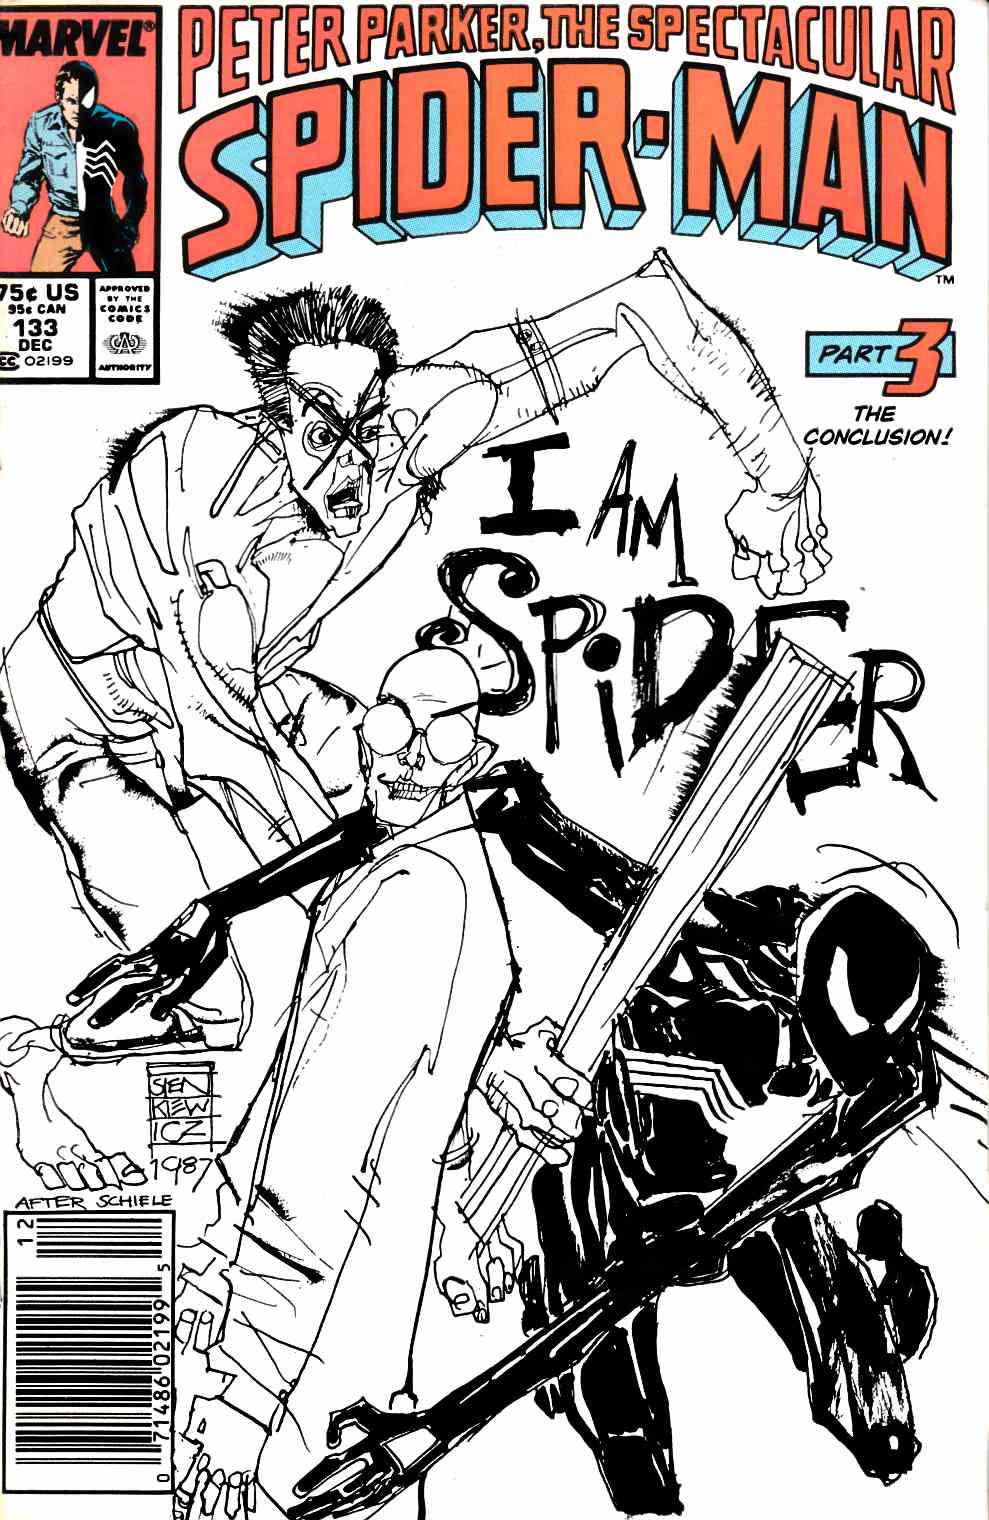 Peter Parker Spectacular Spider-Man #133 Newsstand Edition Fine (6.0) [Marvel Comic] THUMBNAIL